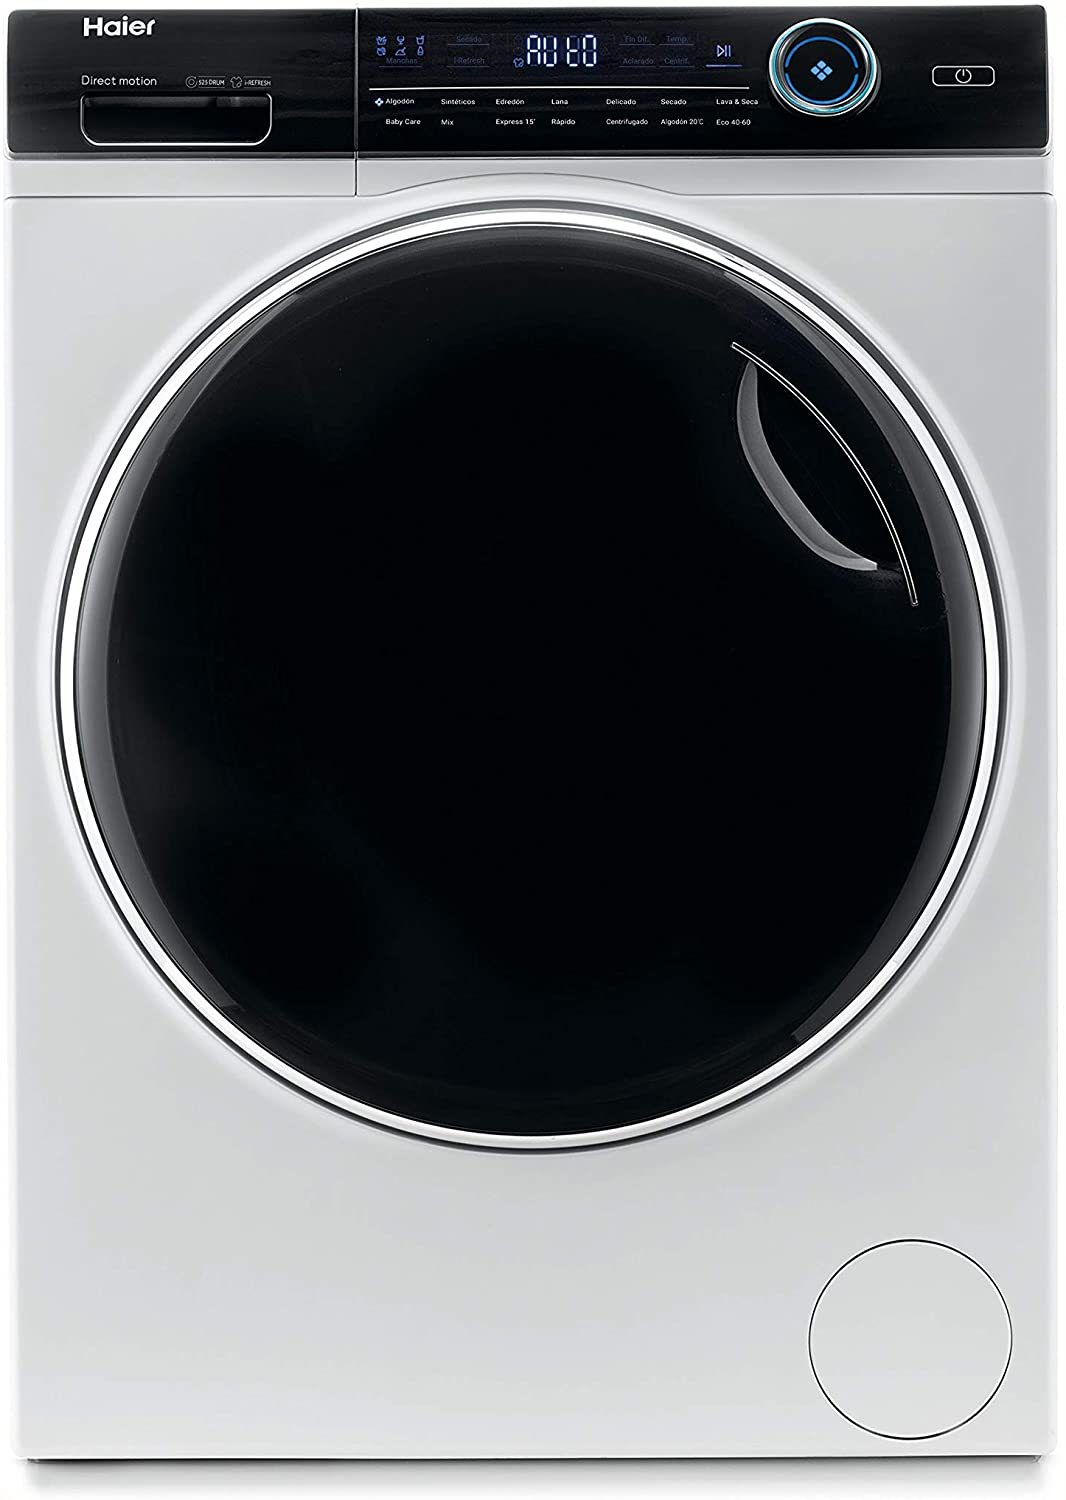 Haier 12 Kg Fully Automatic Front Load Inverter Washing Machine (HWD120-B14979)